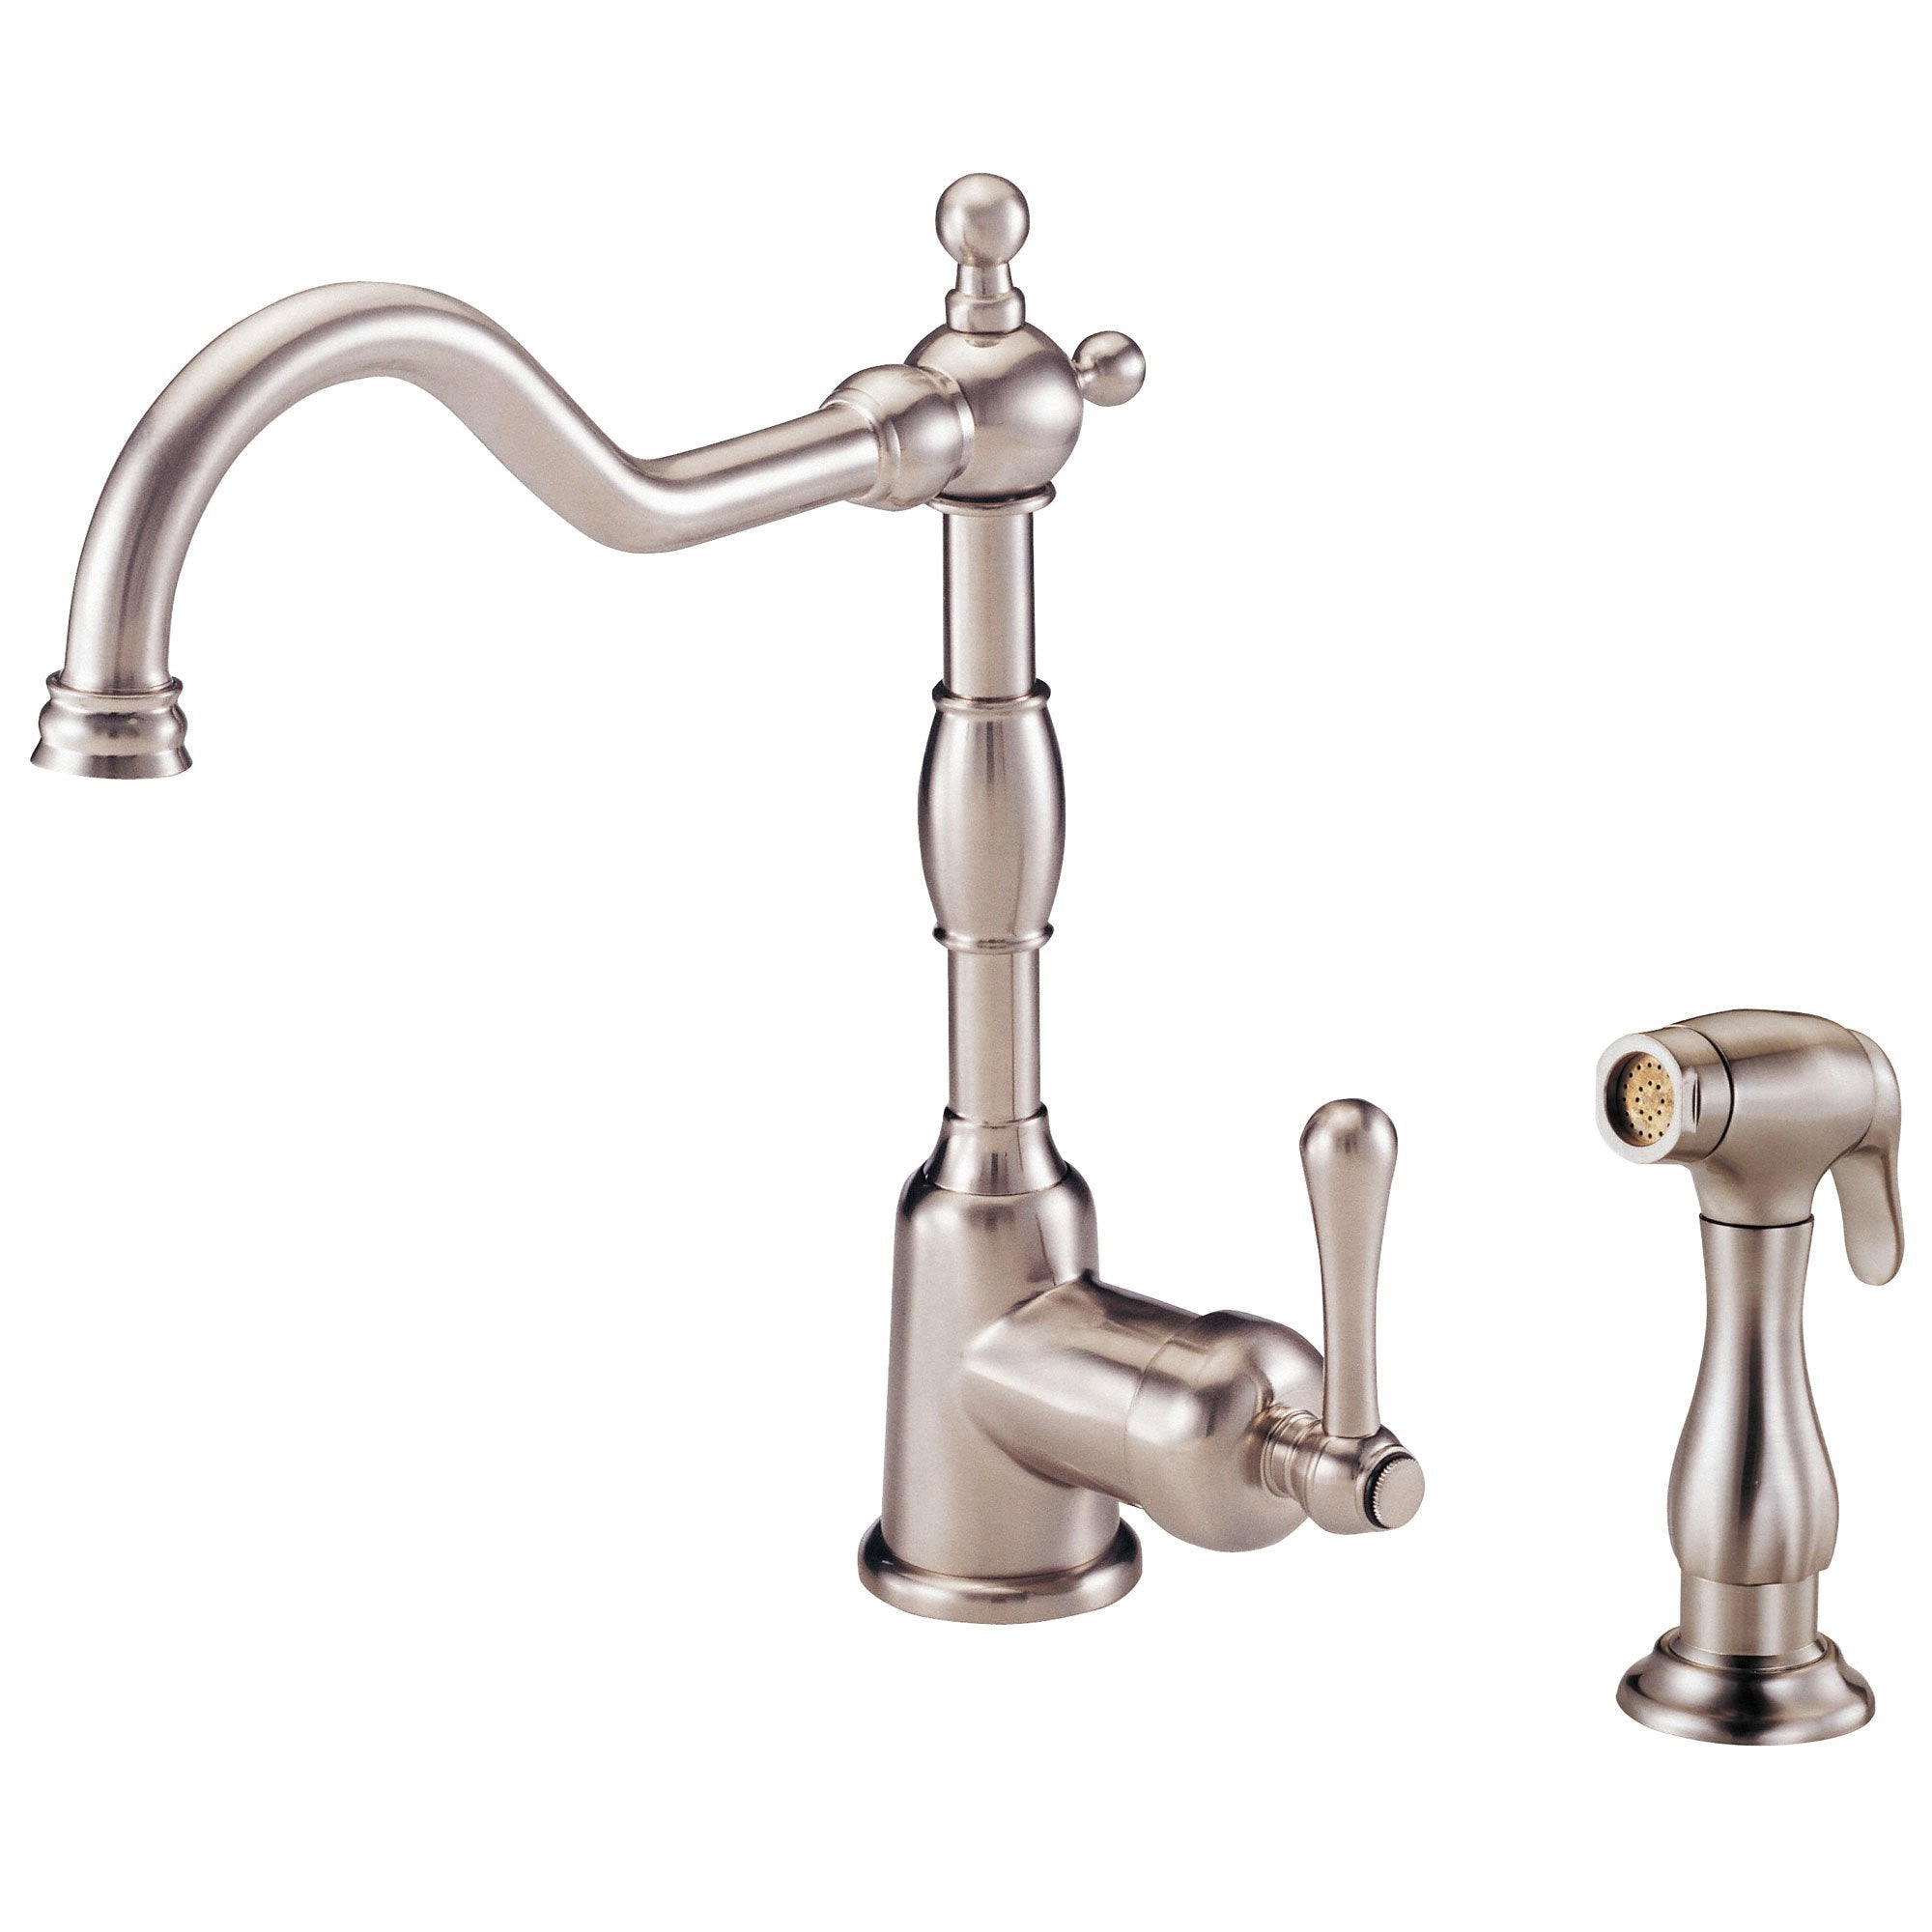 Danze Opulence Stainless Steel Single Side Handle Kitchen Faucet with Sprayer